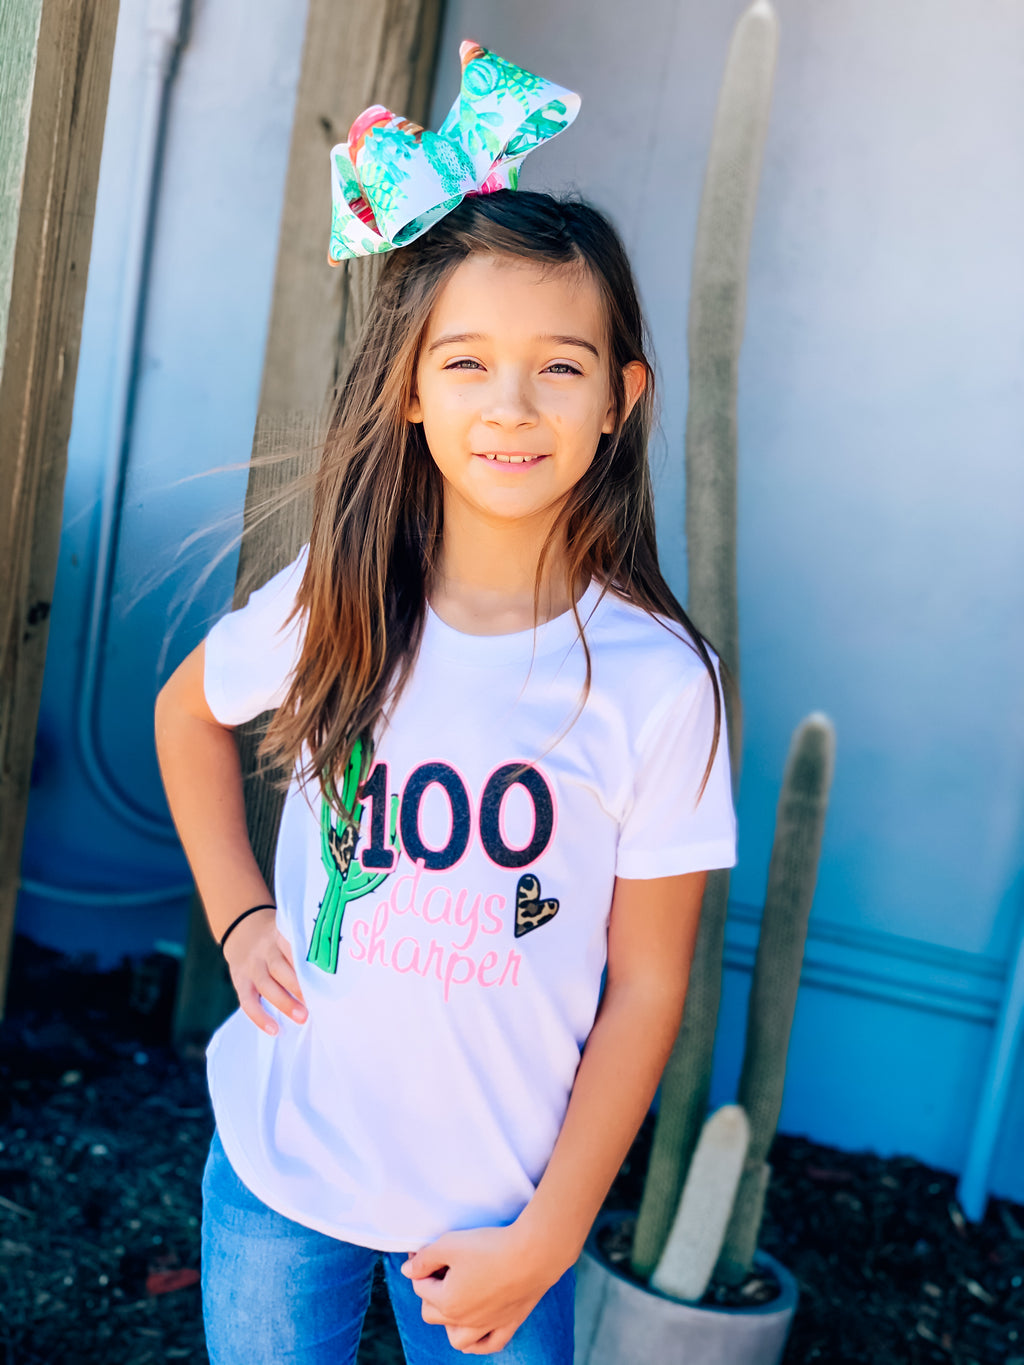 100 Days Sharper Kids Tee